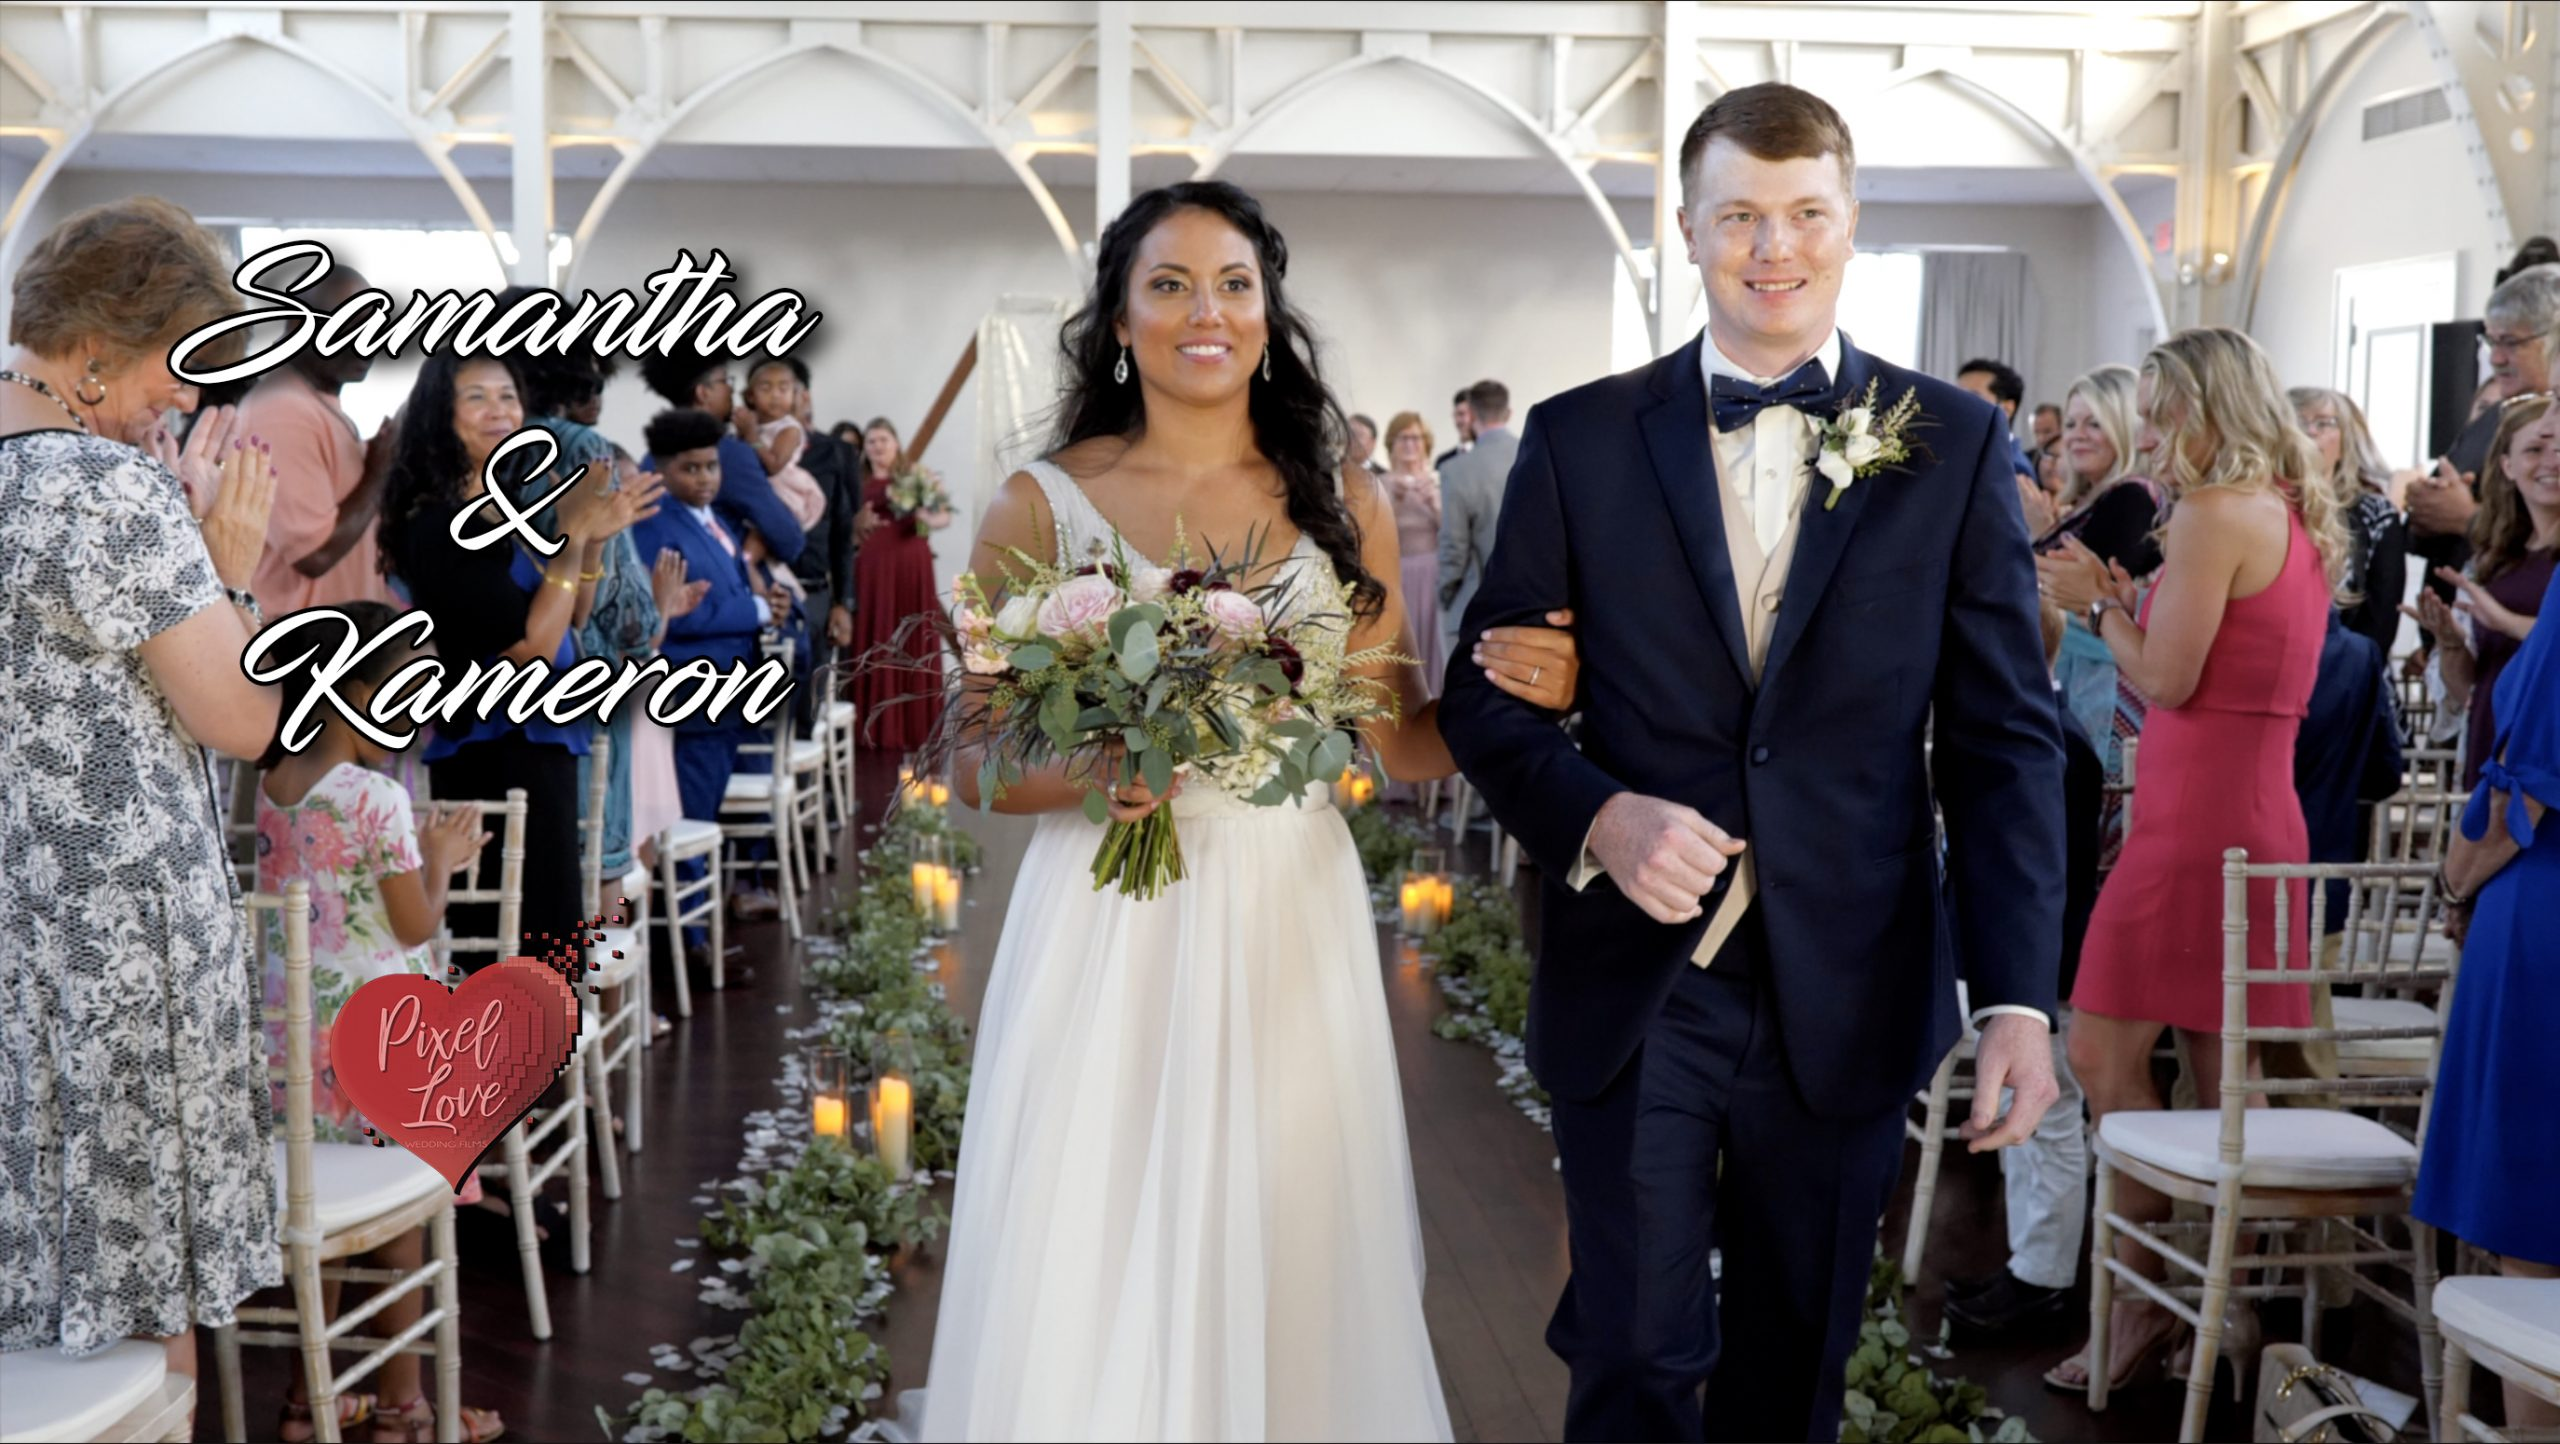 Samantha & Kameron – Wedding at The Atrium at Overton Square, Memphis, TN